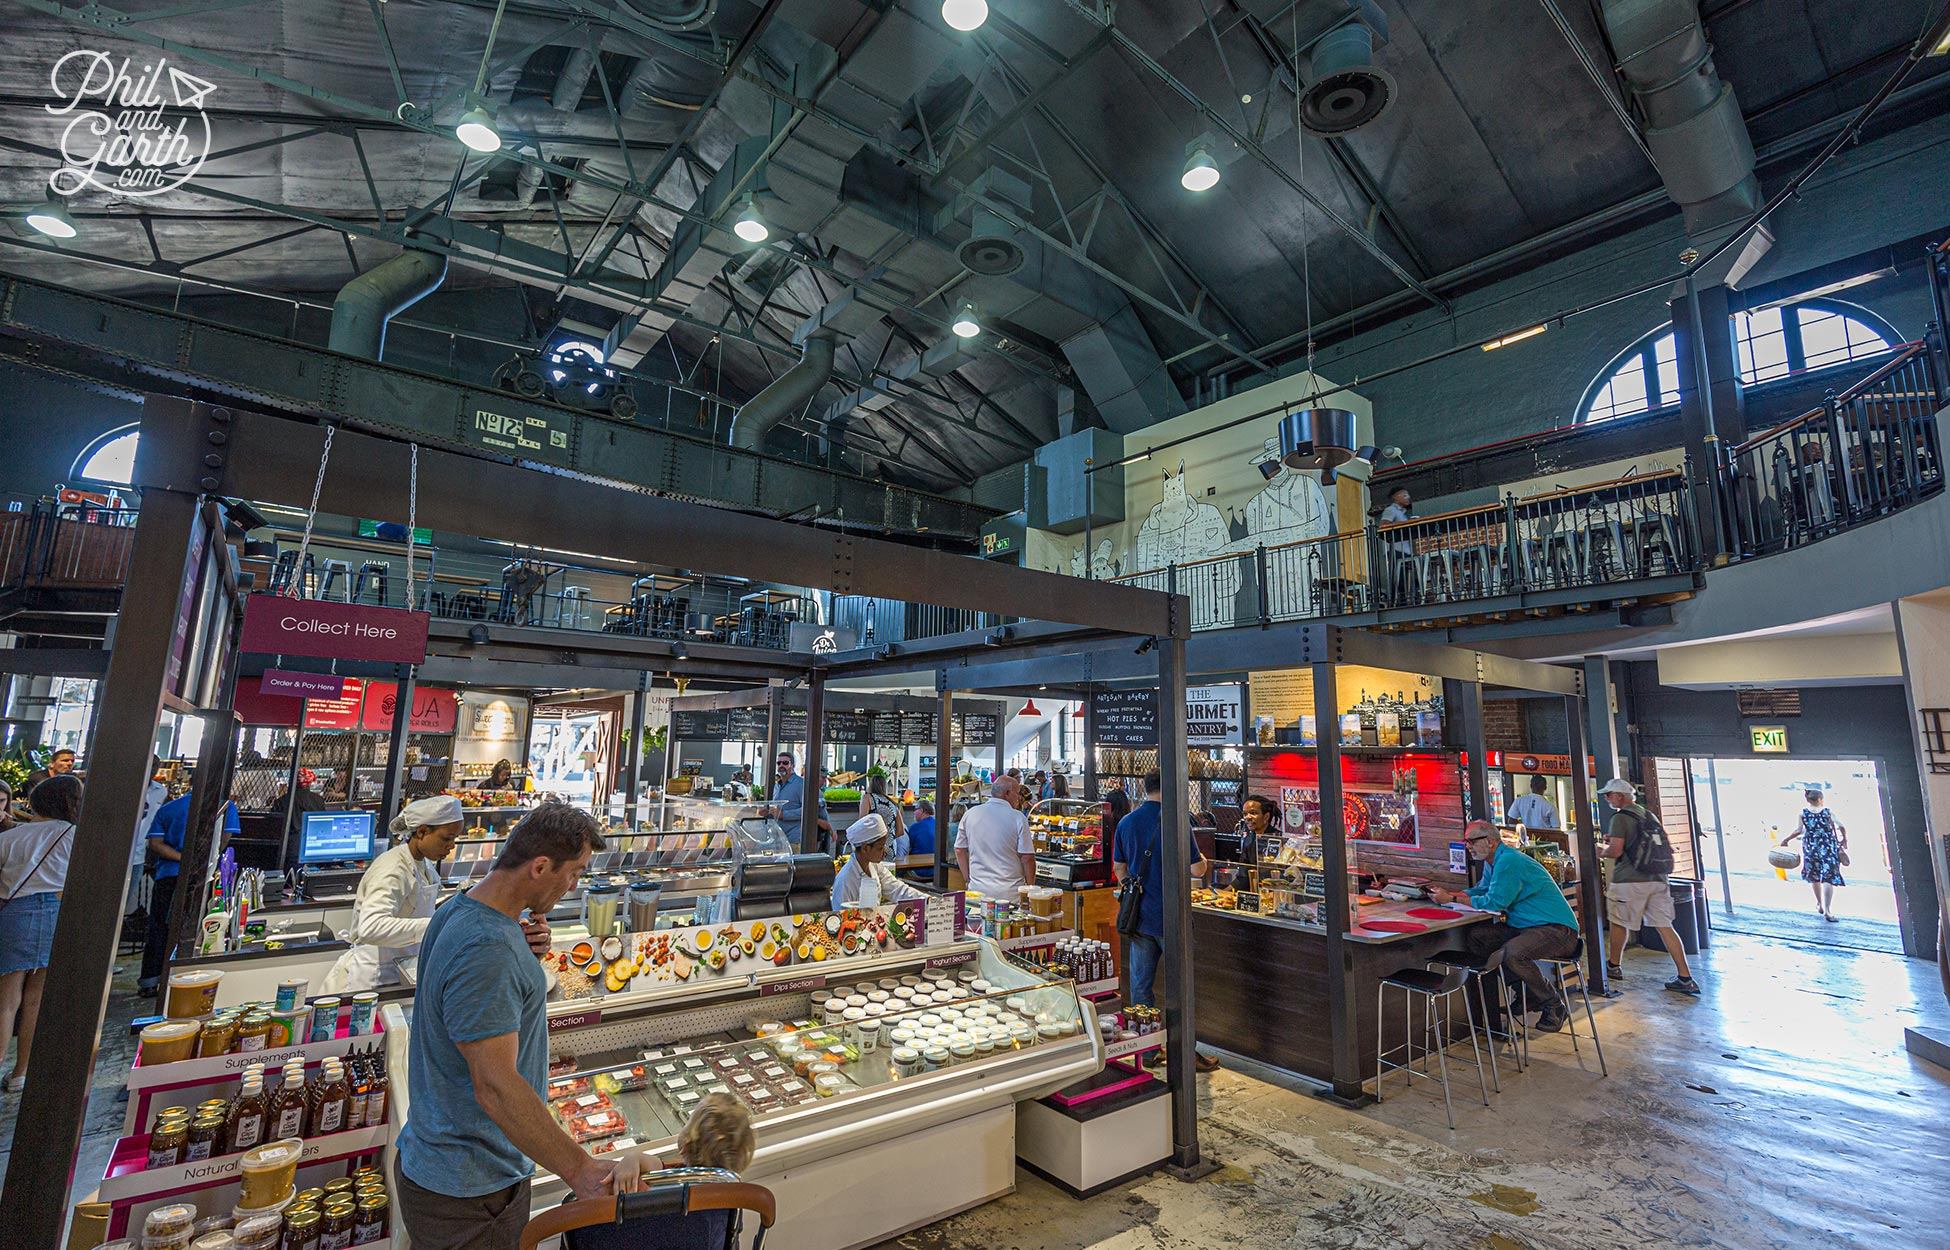 Inside the V&A Food Market - There's over 40 tenants offering affordable food